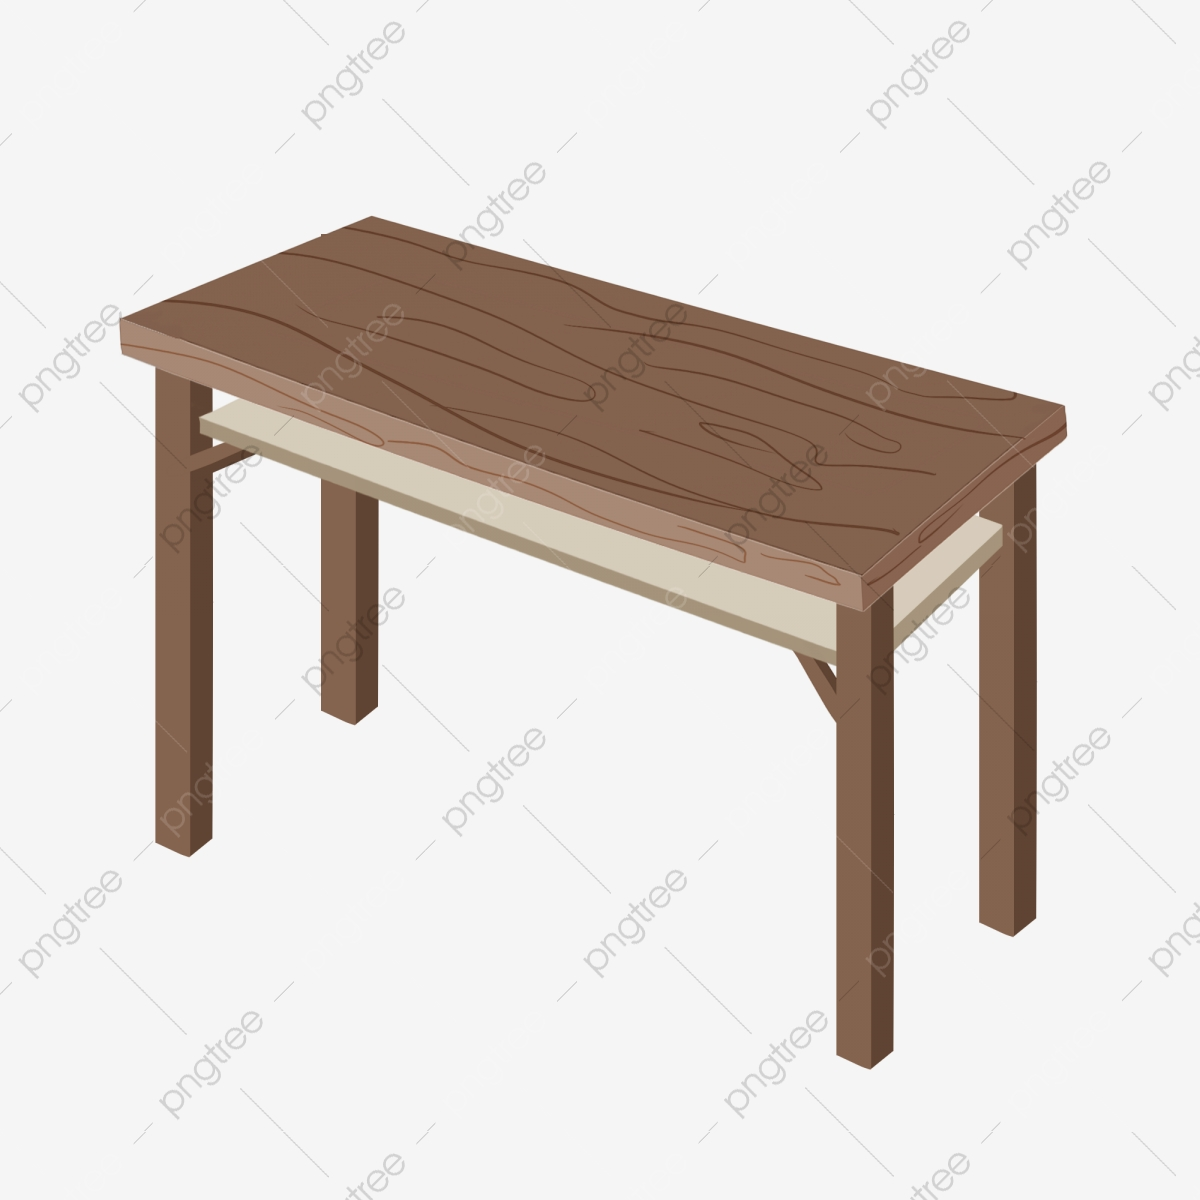 Brown Wood Table Illustration Solid Wood Furniture Rectangular Table Brown Table Png Transparent Clipart Image And Psd File For Free Download